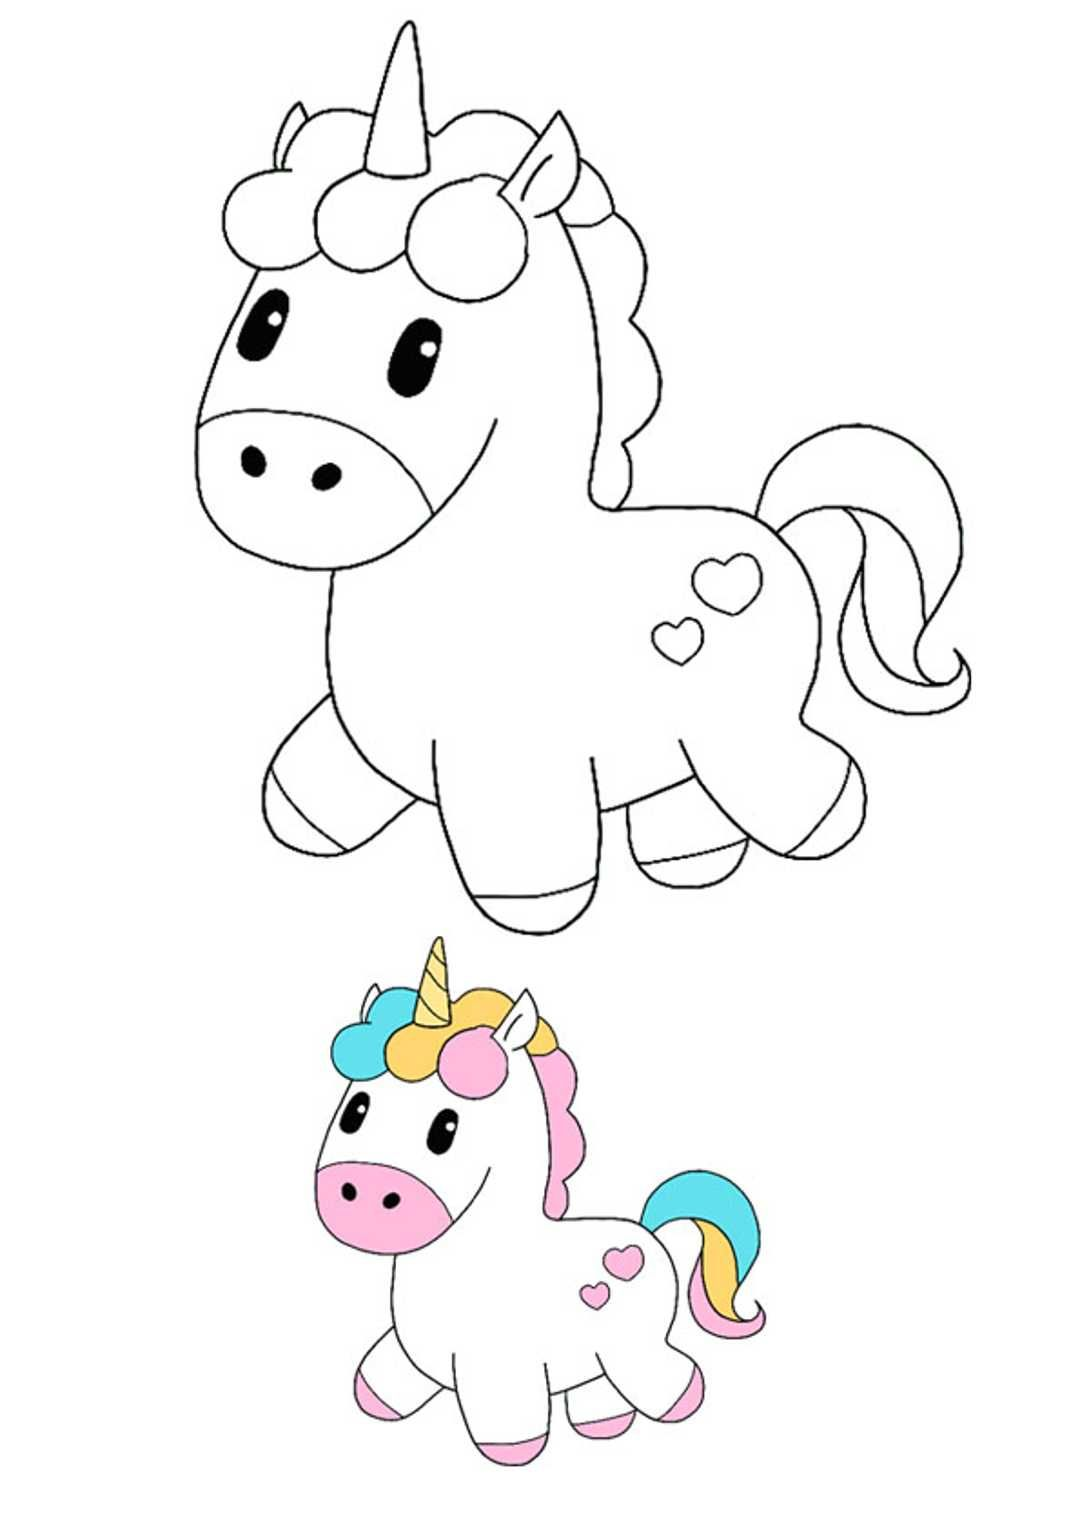 Cute Unicorn Coloring Pages Unicorn Coloring Pages Mermaid Coloring Pages Fairy Coloring Pages